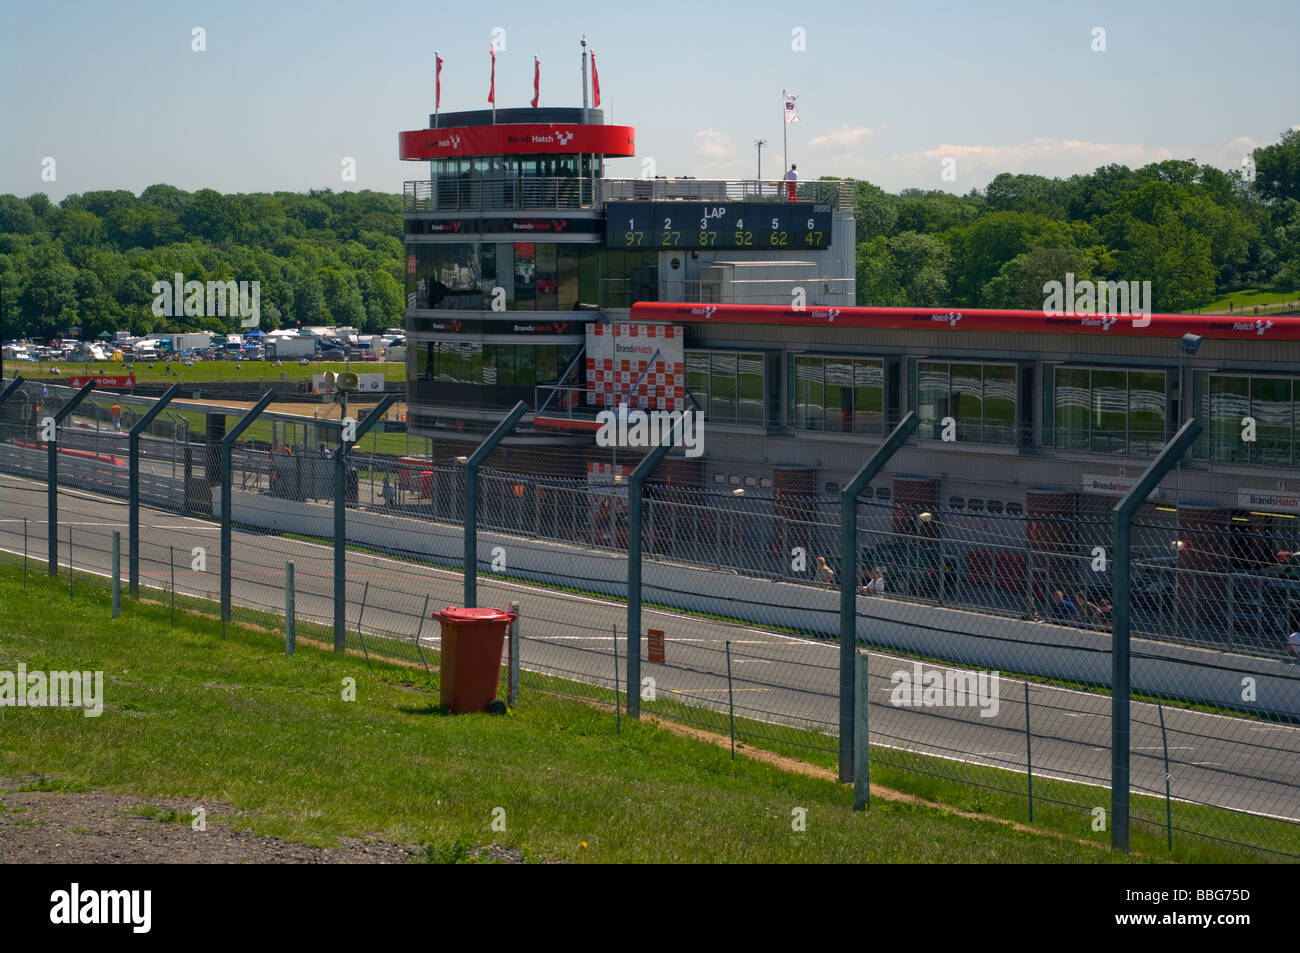 Brabham Straight and The Control Centre at Brands Hatch Kent England - Stock Image